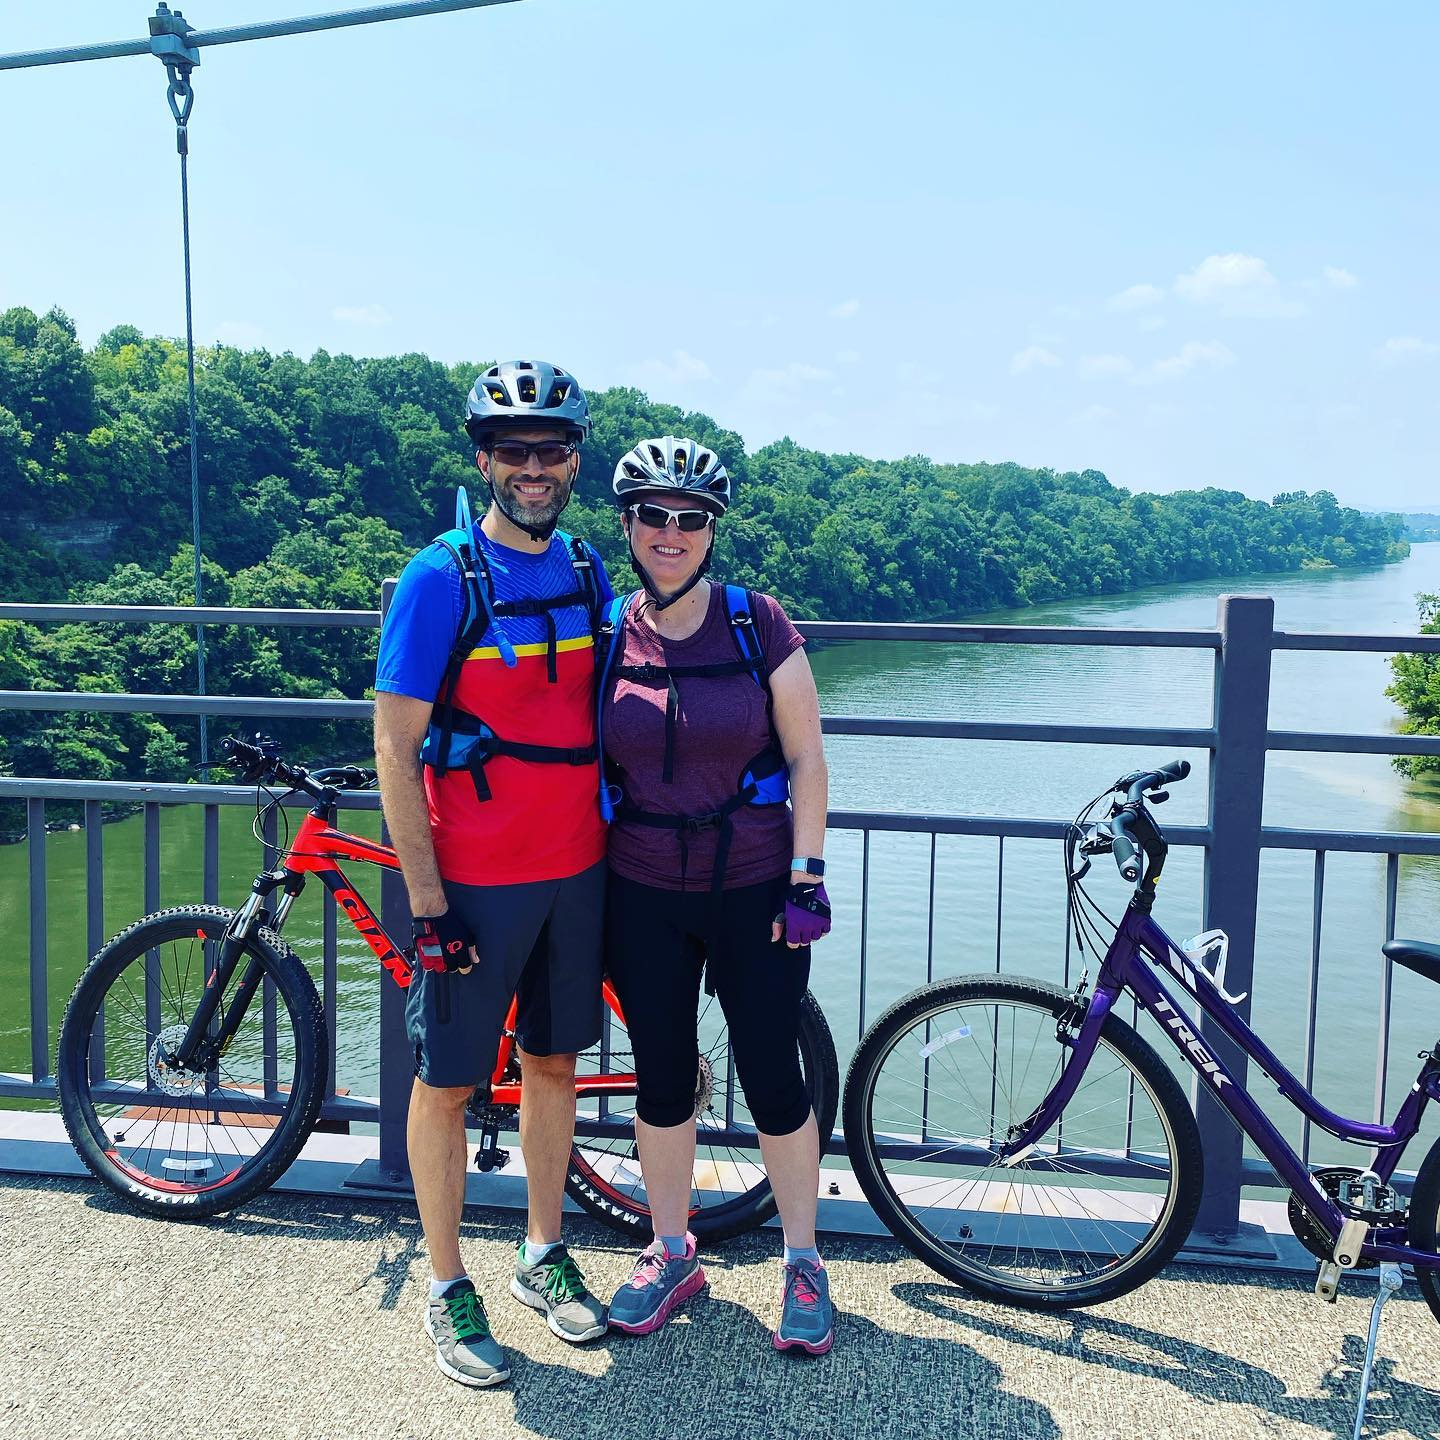 Biking with my bride while the girls were at a youth group event. #family #biking